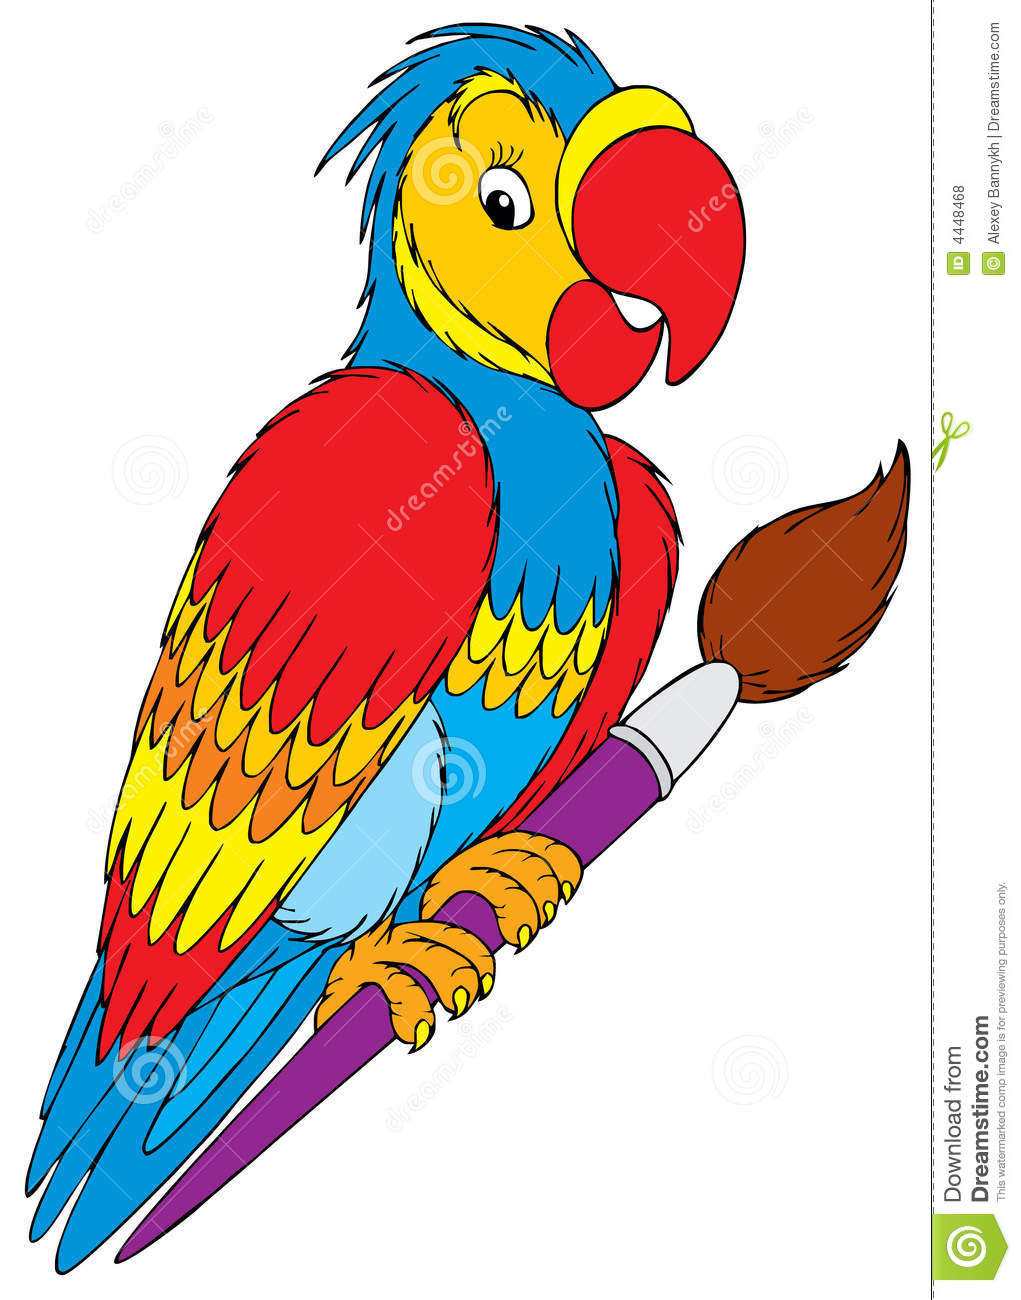 parrot royalty free stock photos image 4448468